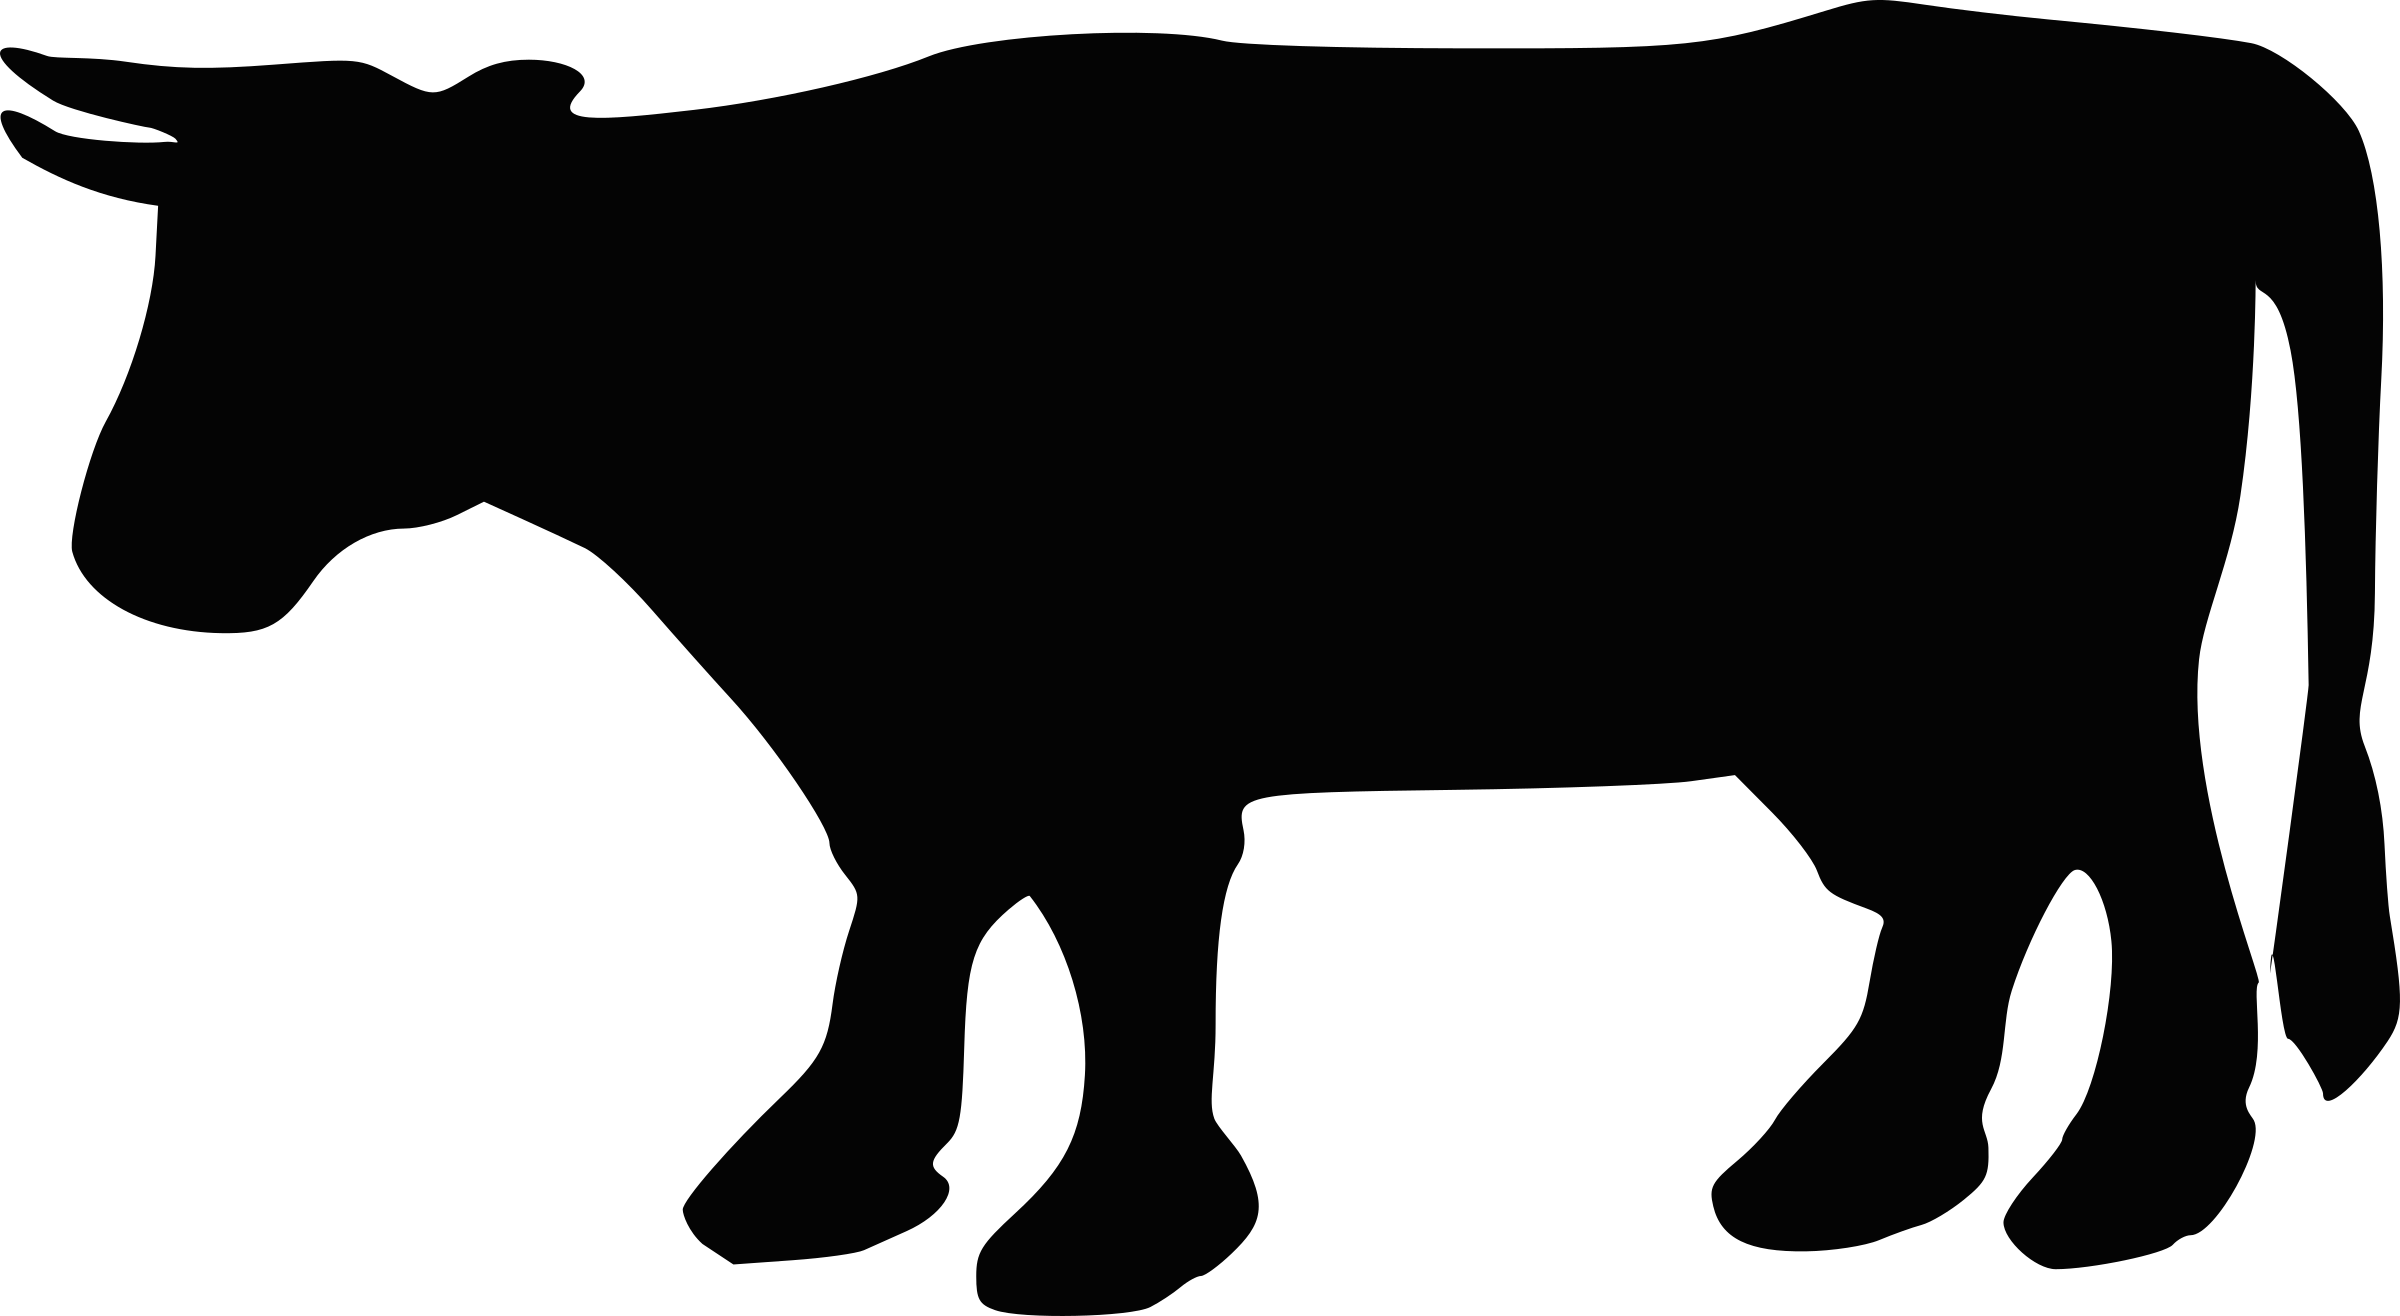 Silhouette png at getdrawings. Clipart cow animal